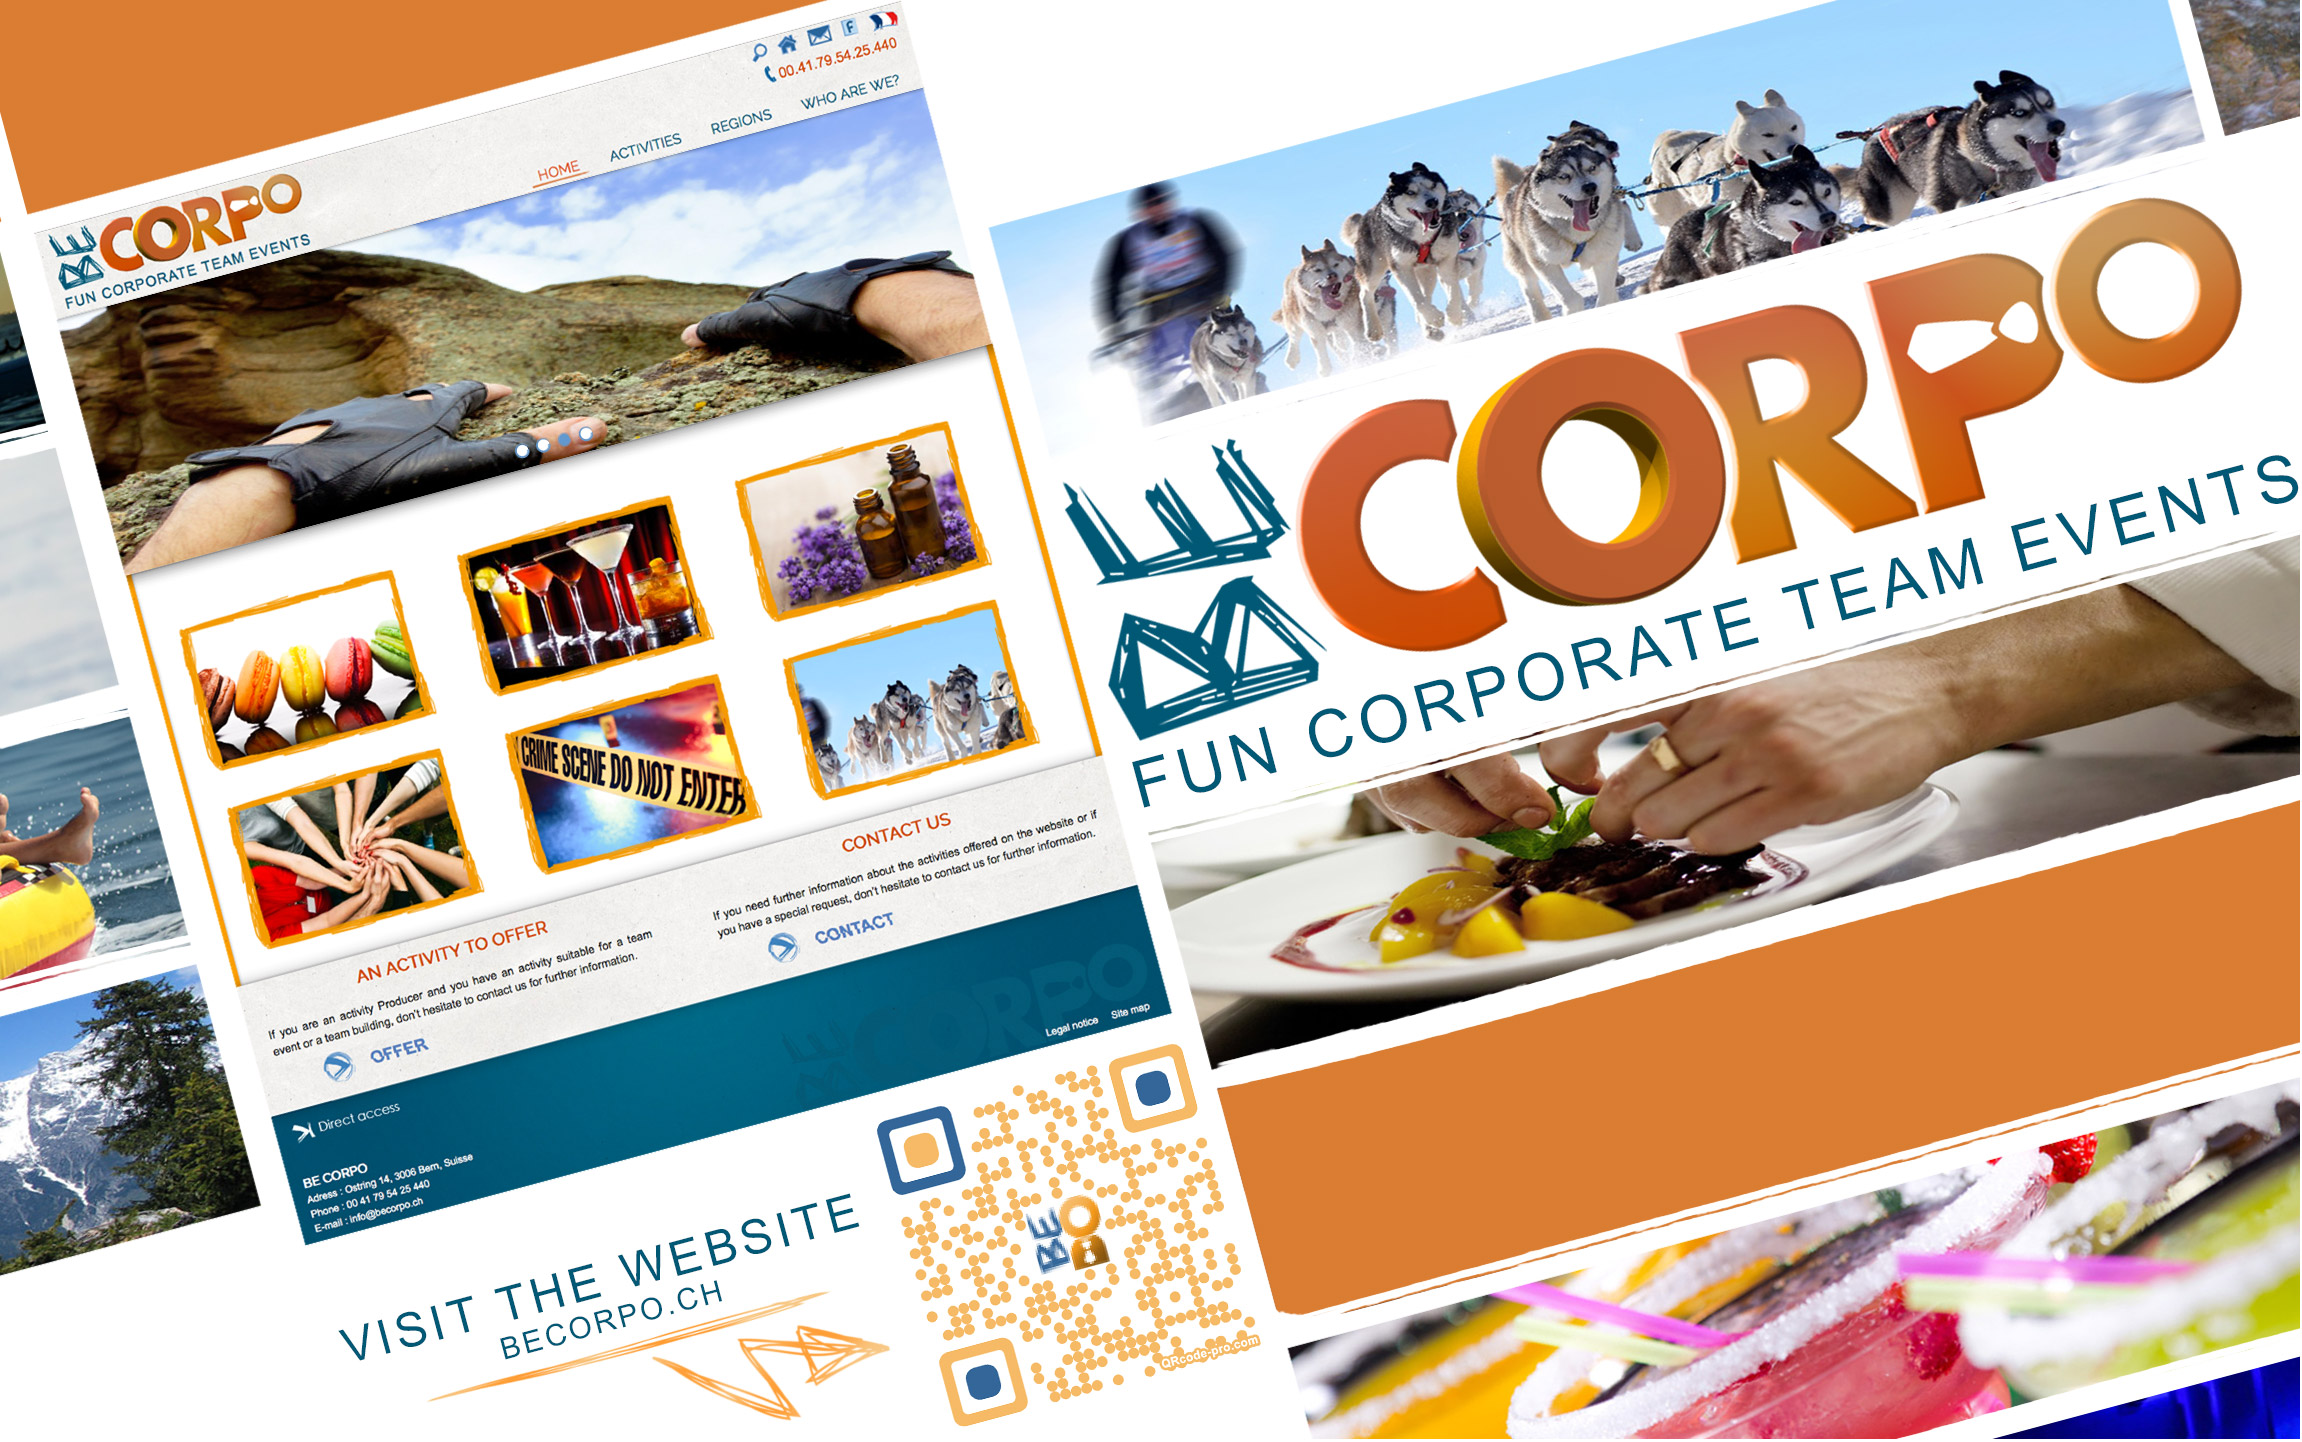 Becorpo fun and corporate team events